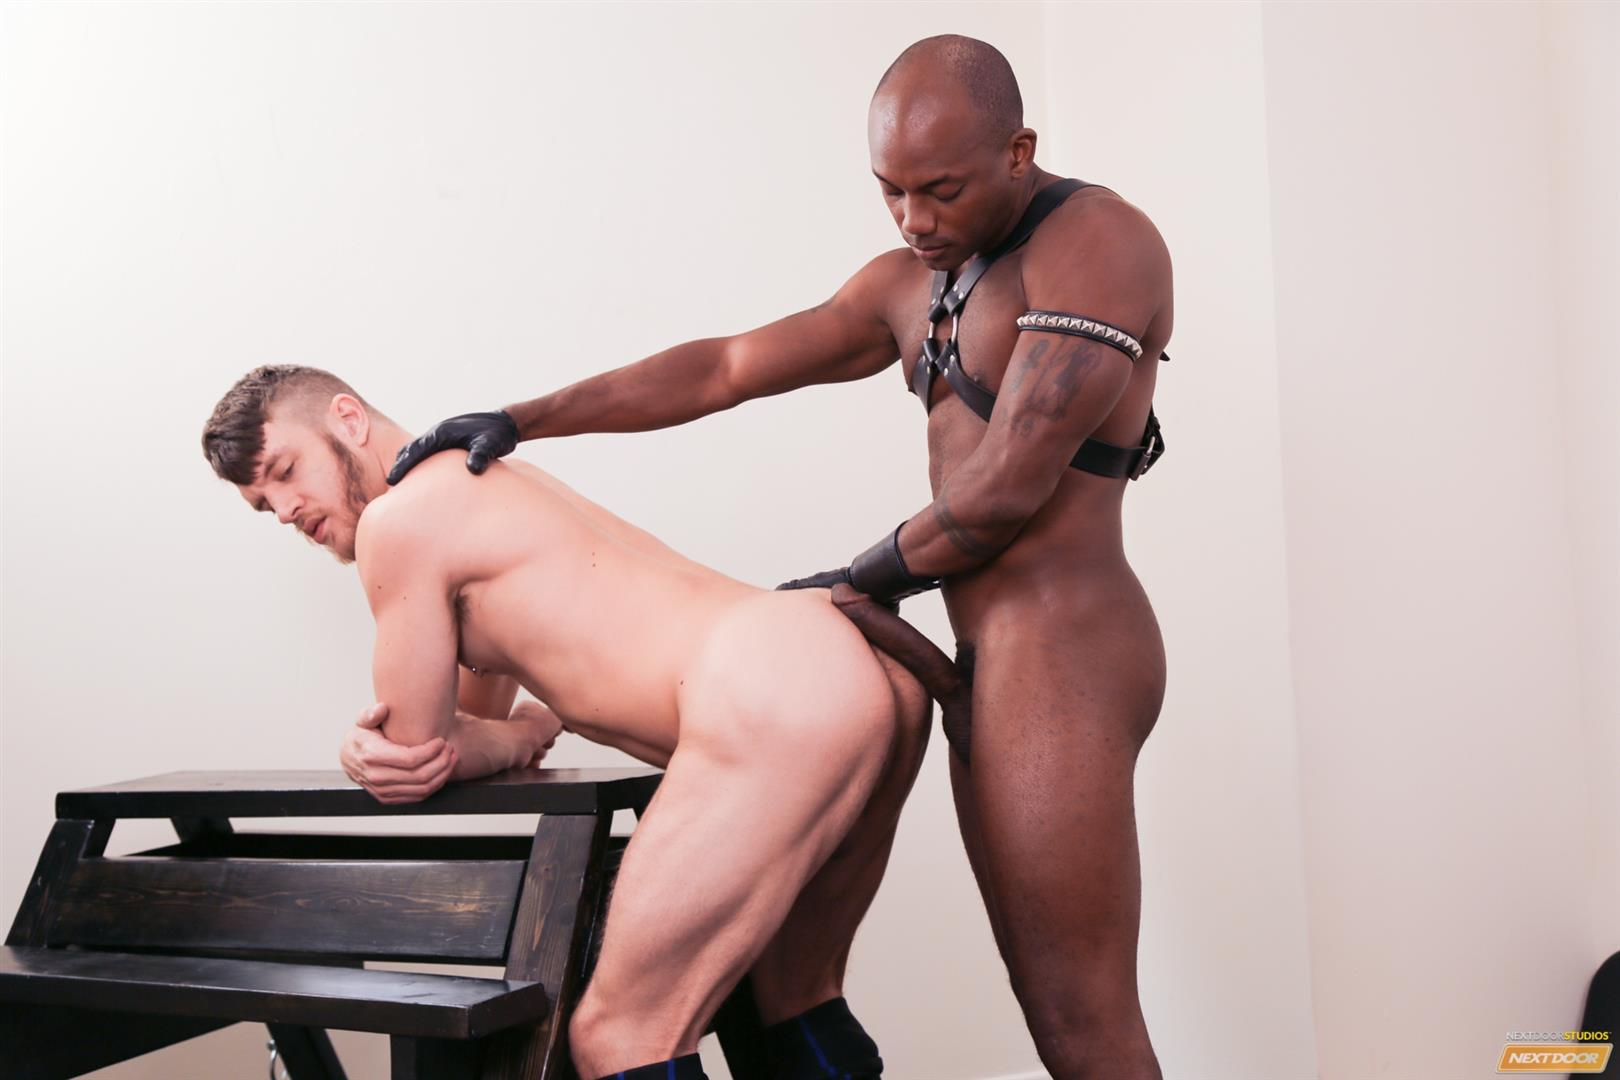 Next Door Ebony Osiris Blade and Caleb King Big Black Cock In White Ass Amateur Gay Porn 14 Caleb King Gets Dominated By Osiris Blades Big Black Cock